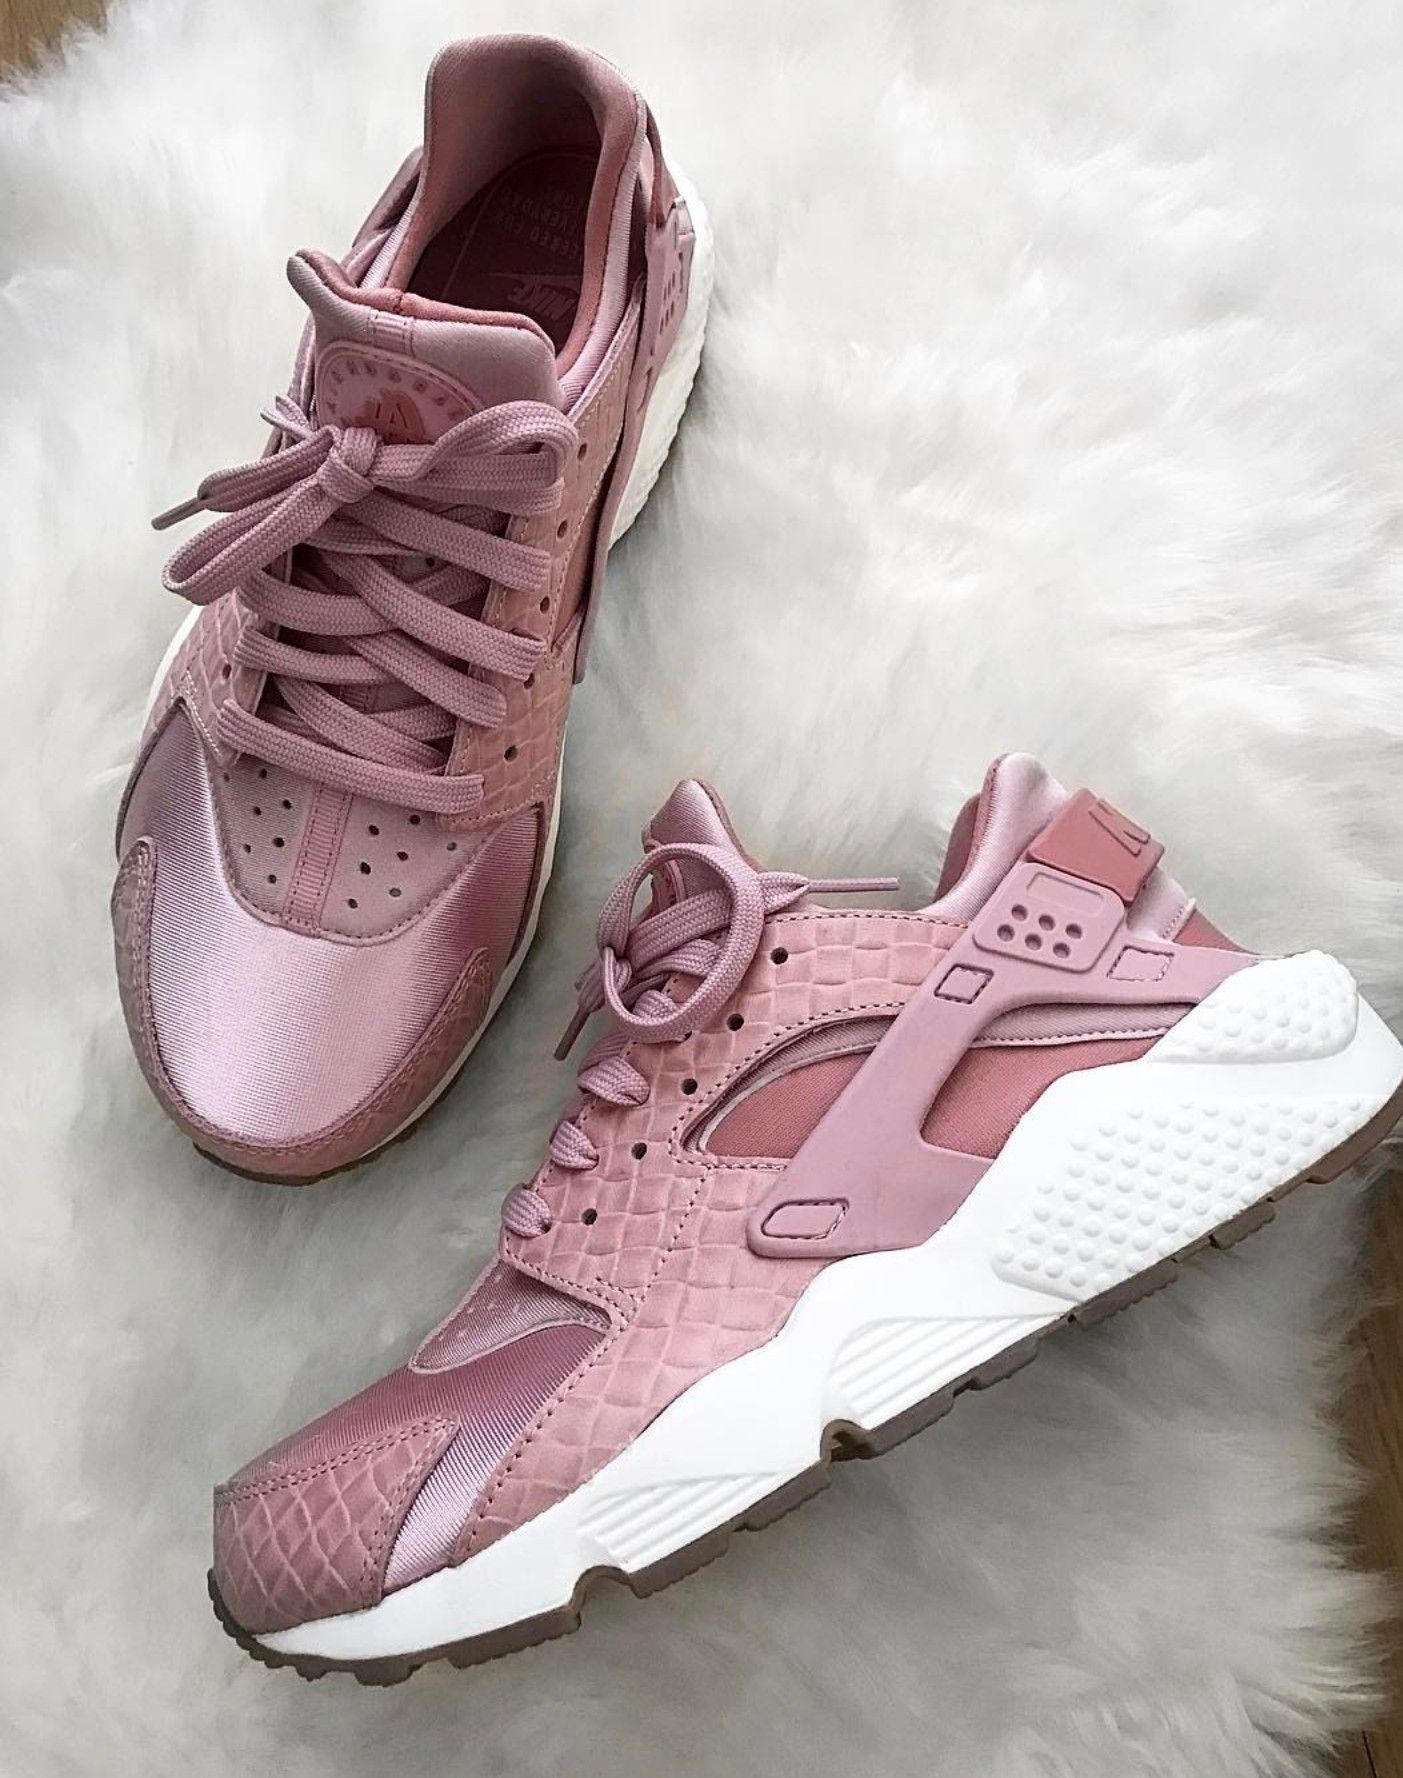 best sneakers ae662 d220d Nike Huarache in rosa   Foto  fashionthingsbylisa  Instagram